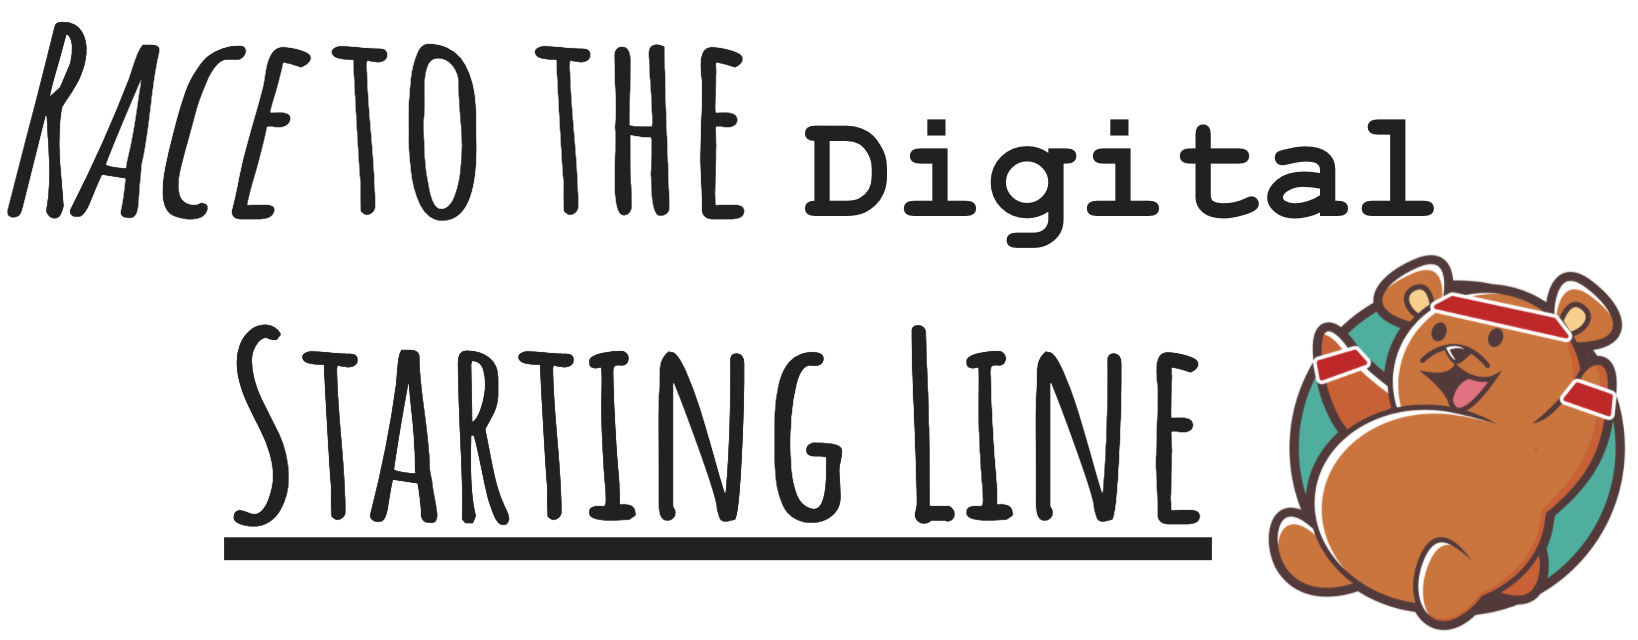 Race to the digital starting line